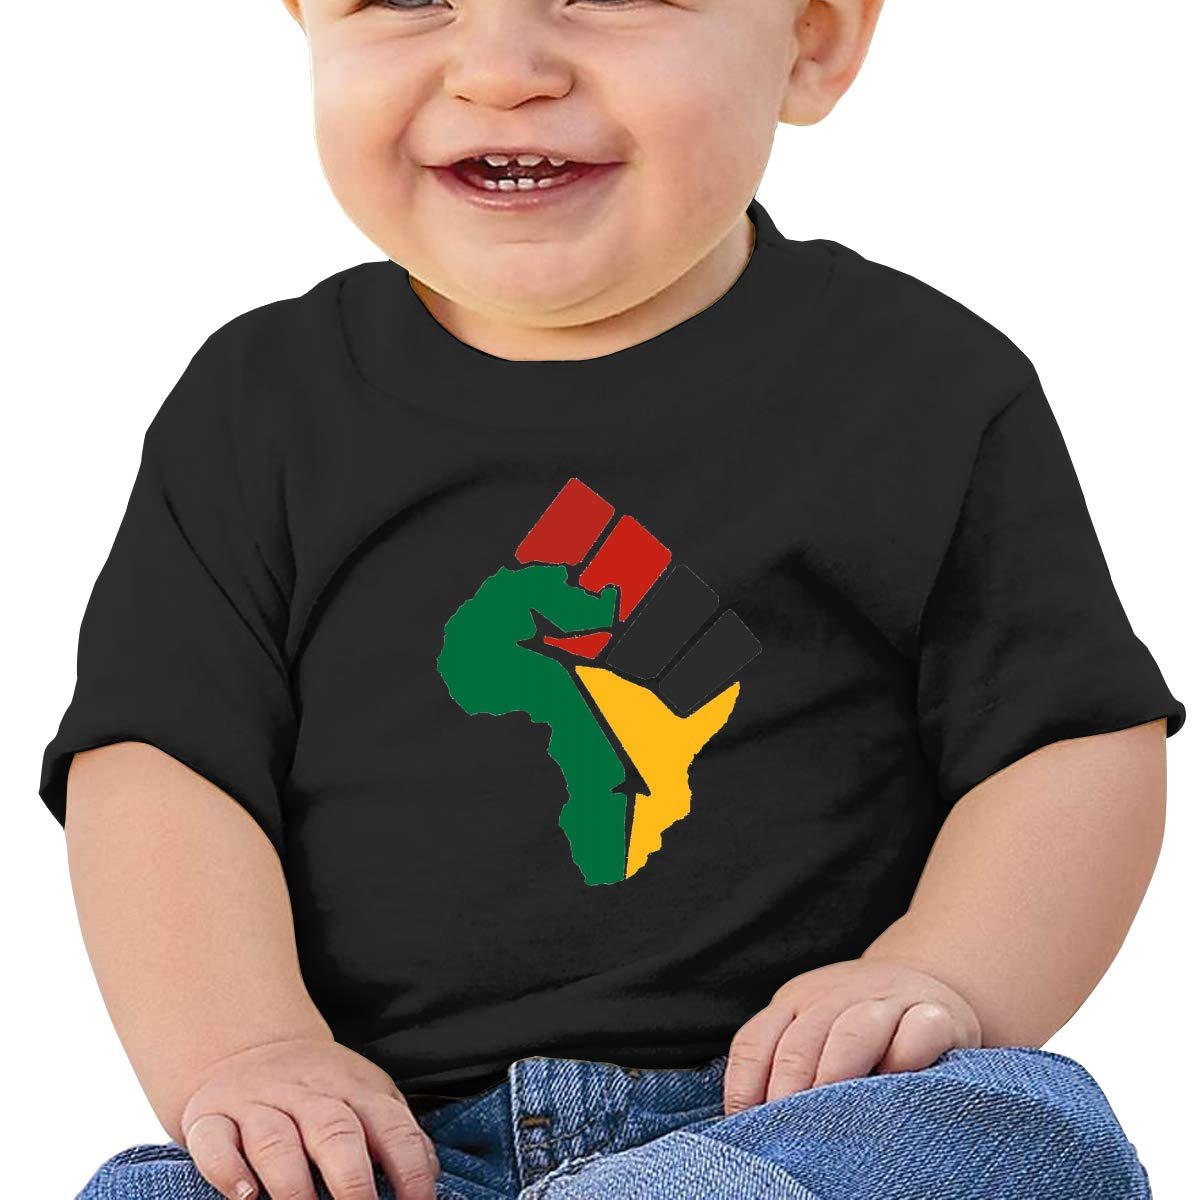 JVNSS Black Power Raised Fist Baby T-Shirt Little Baby Cotton T Shirts Crew Neck Clothes for 6M-2T Baby